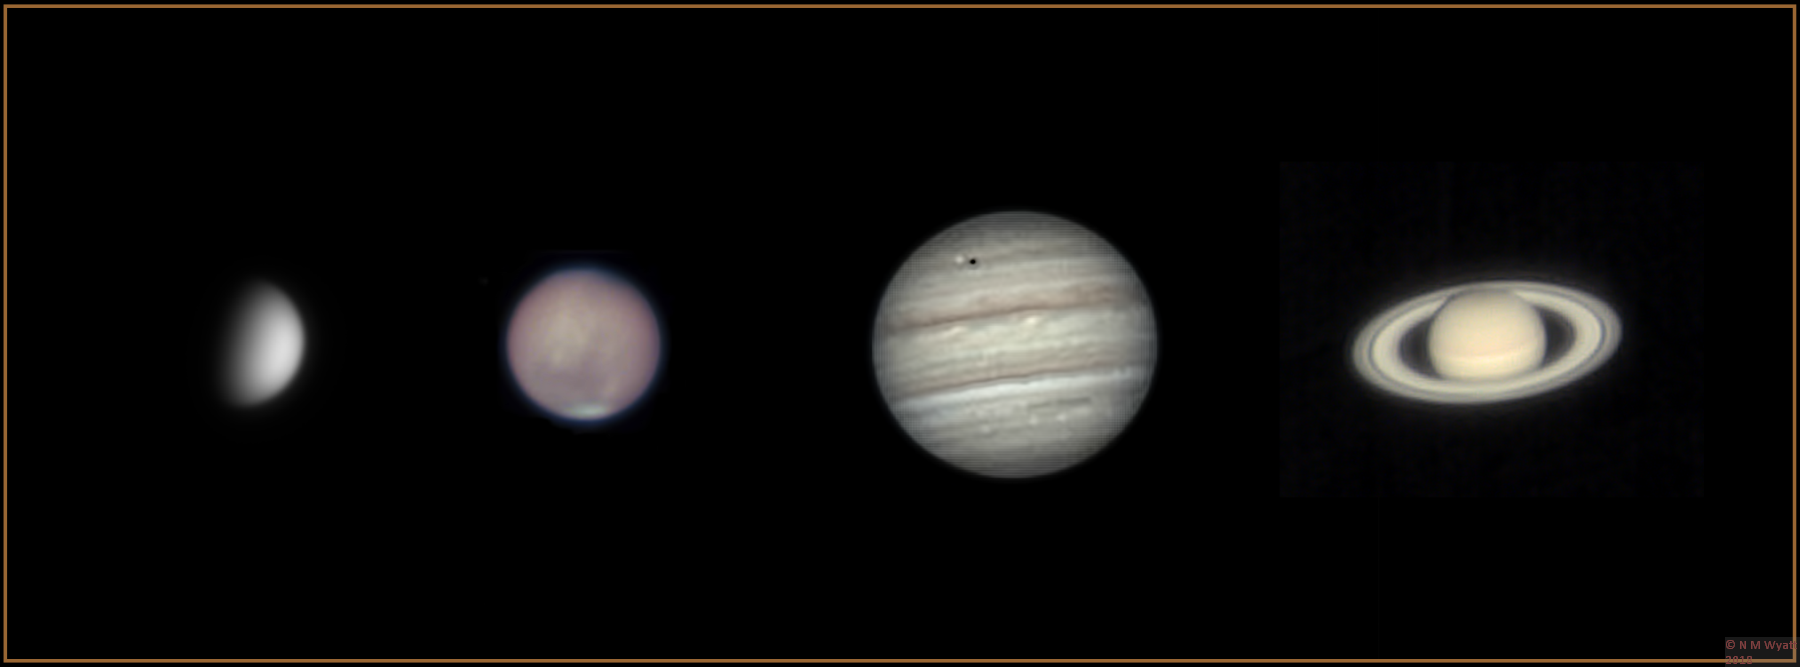 Venus, Mars, Jupiter and Saturn, imaged in the summer of 2018